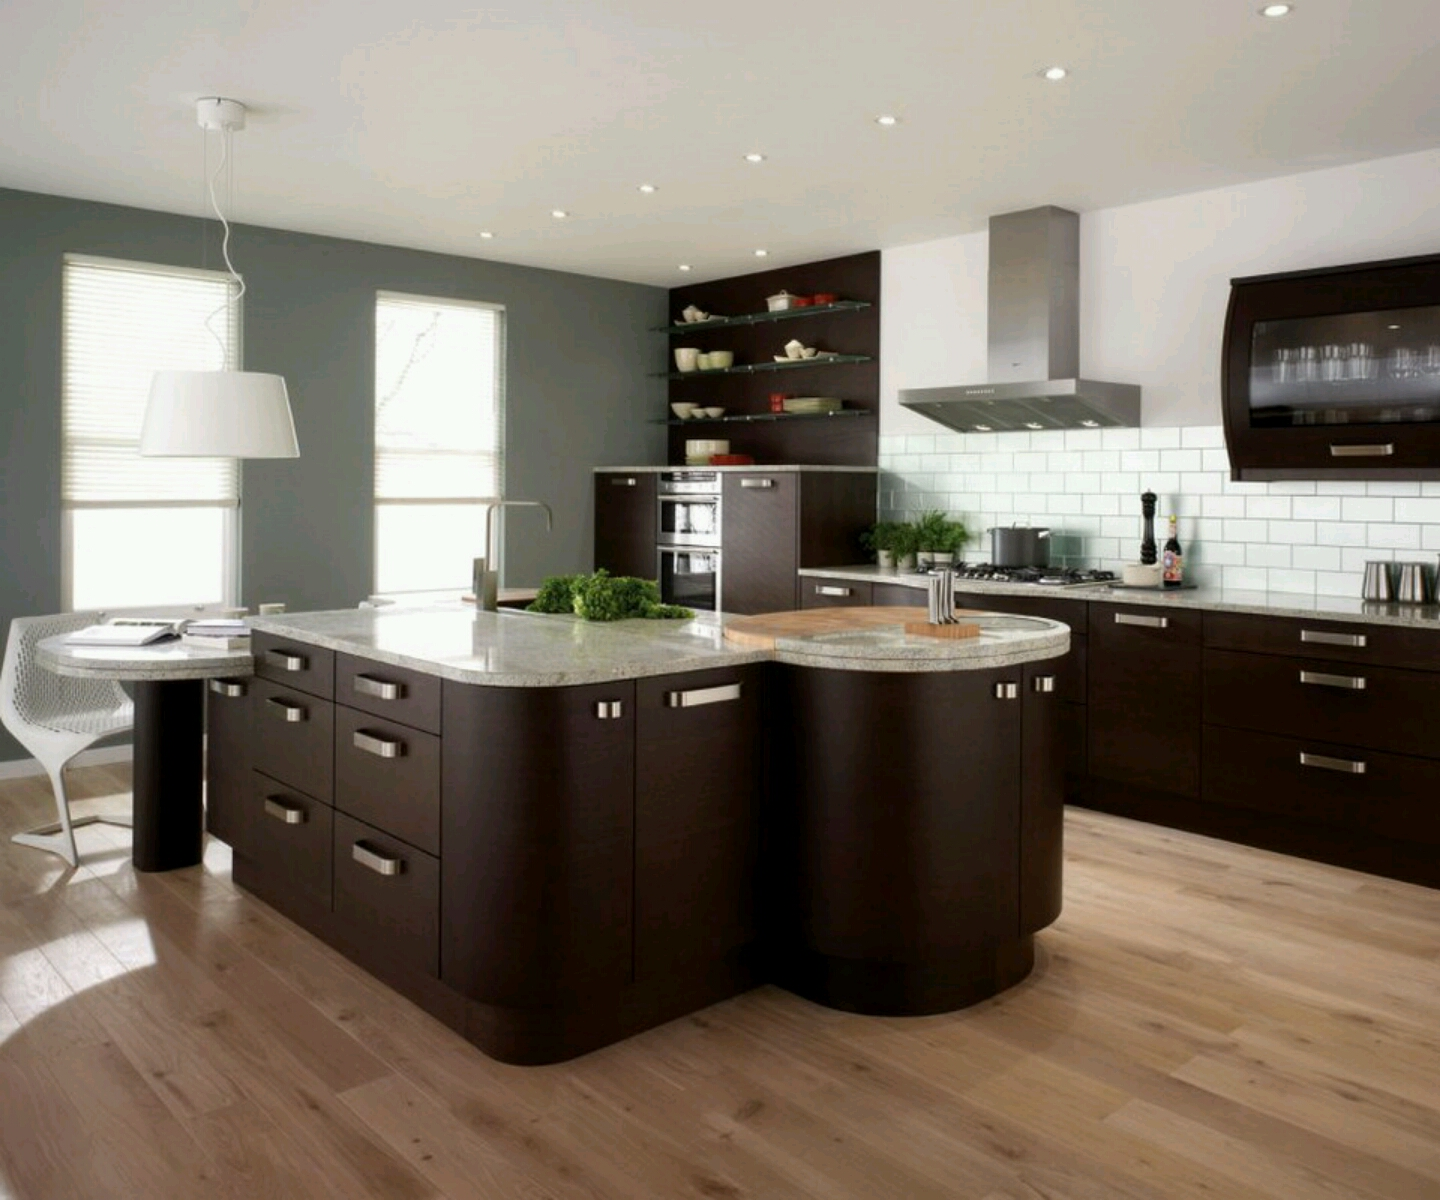 Kitchen Cabinets Design Ideas amazing of kitchen cabinets ideas marvelous kitchen furniture ideas with 40 kitchen cabinet design ideas unique New Home Designs Latest Modern Home Kitchen Cabinet Designs Ideas New Kitchen Design Ideas